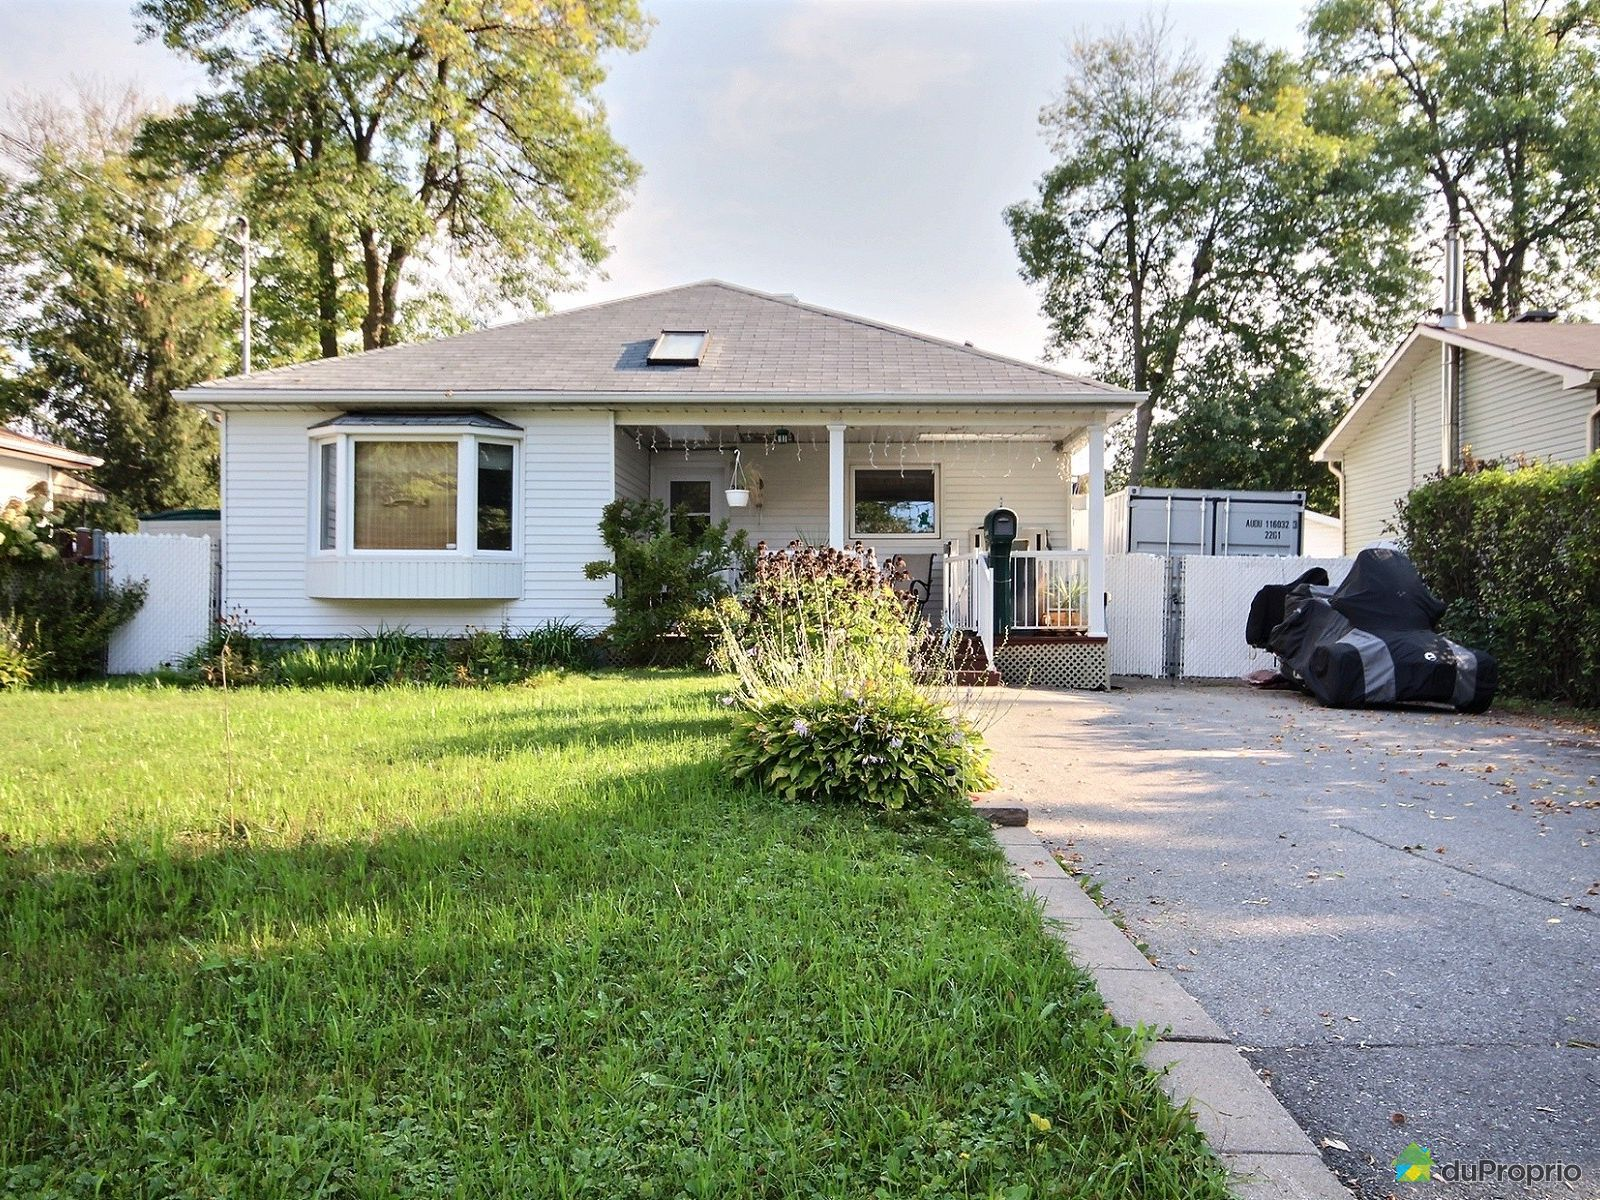 2145 avenue goldfinch dorval lle dorval for sale duproprio solutioingenieria Images